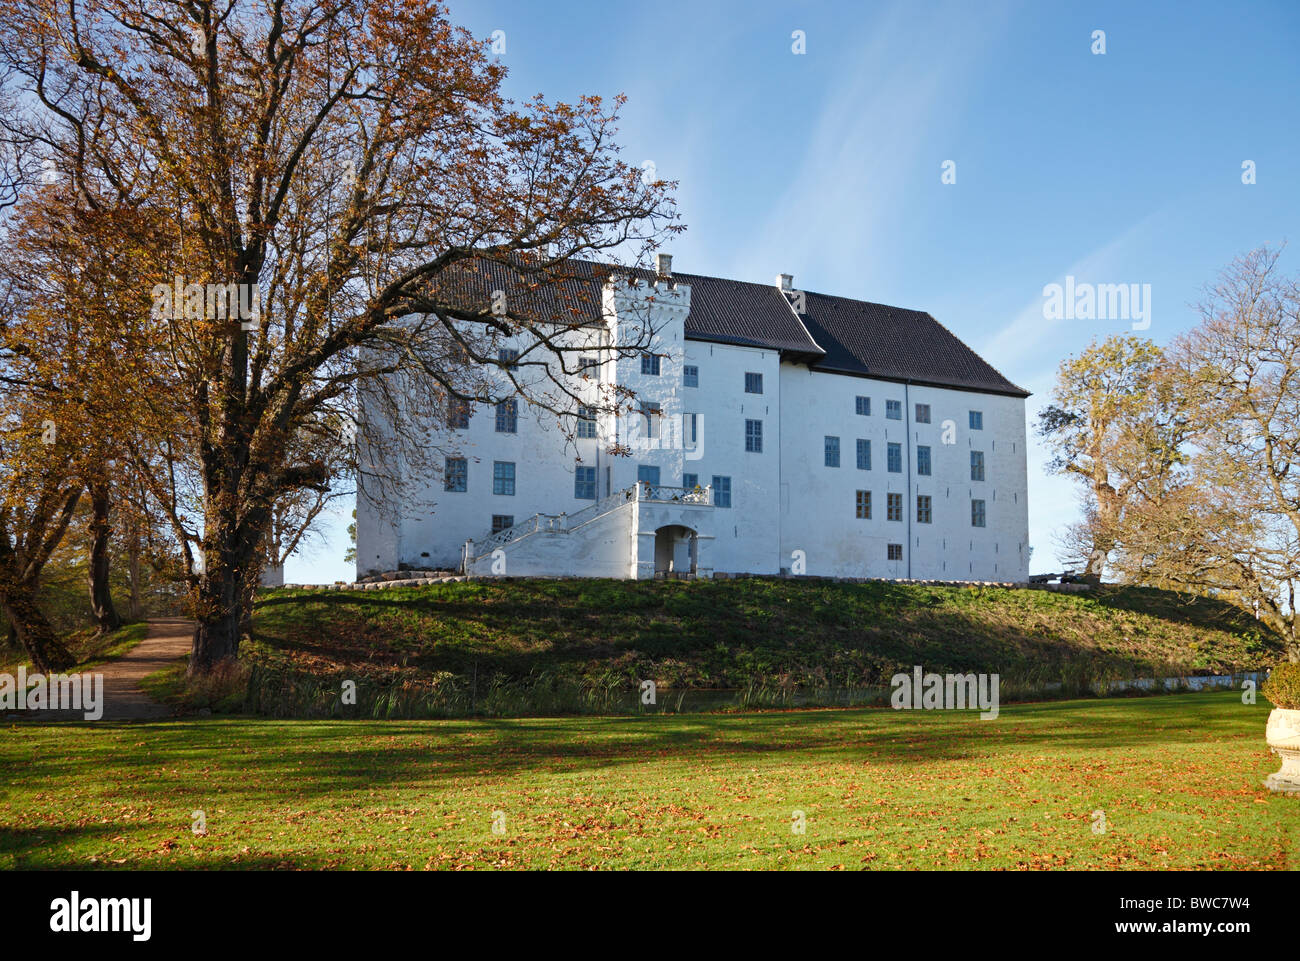 The haunted Castle Dragsholm in the north-western part of Zealand, Denmark. - Stock Image